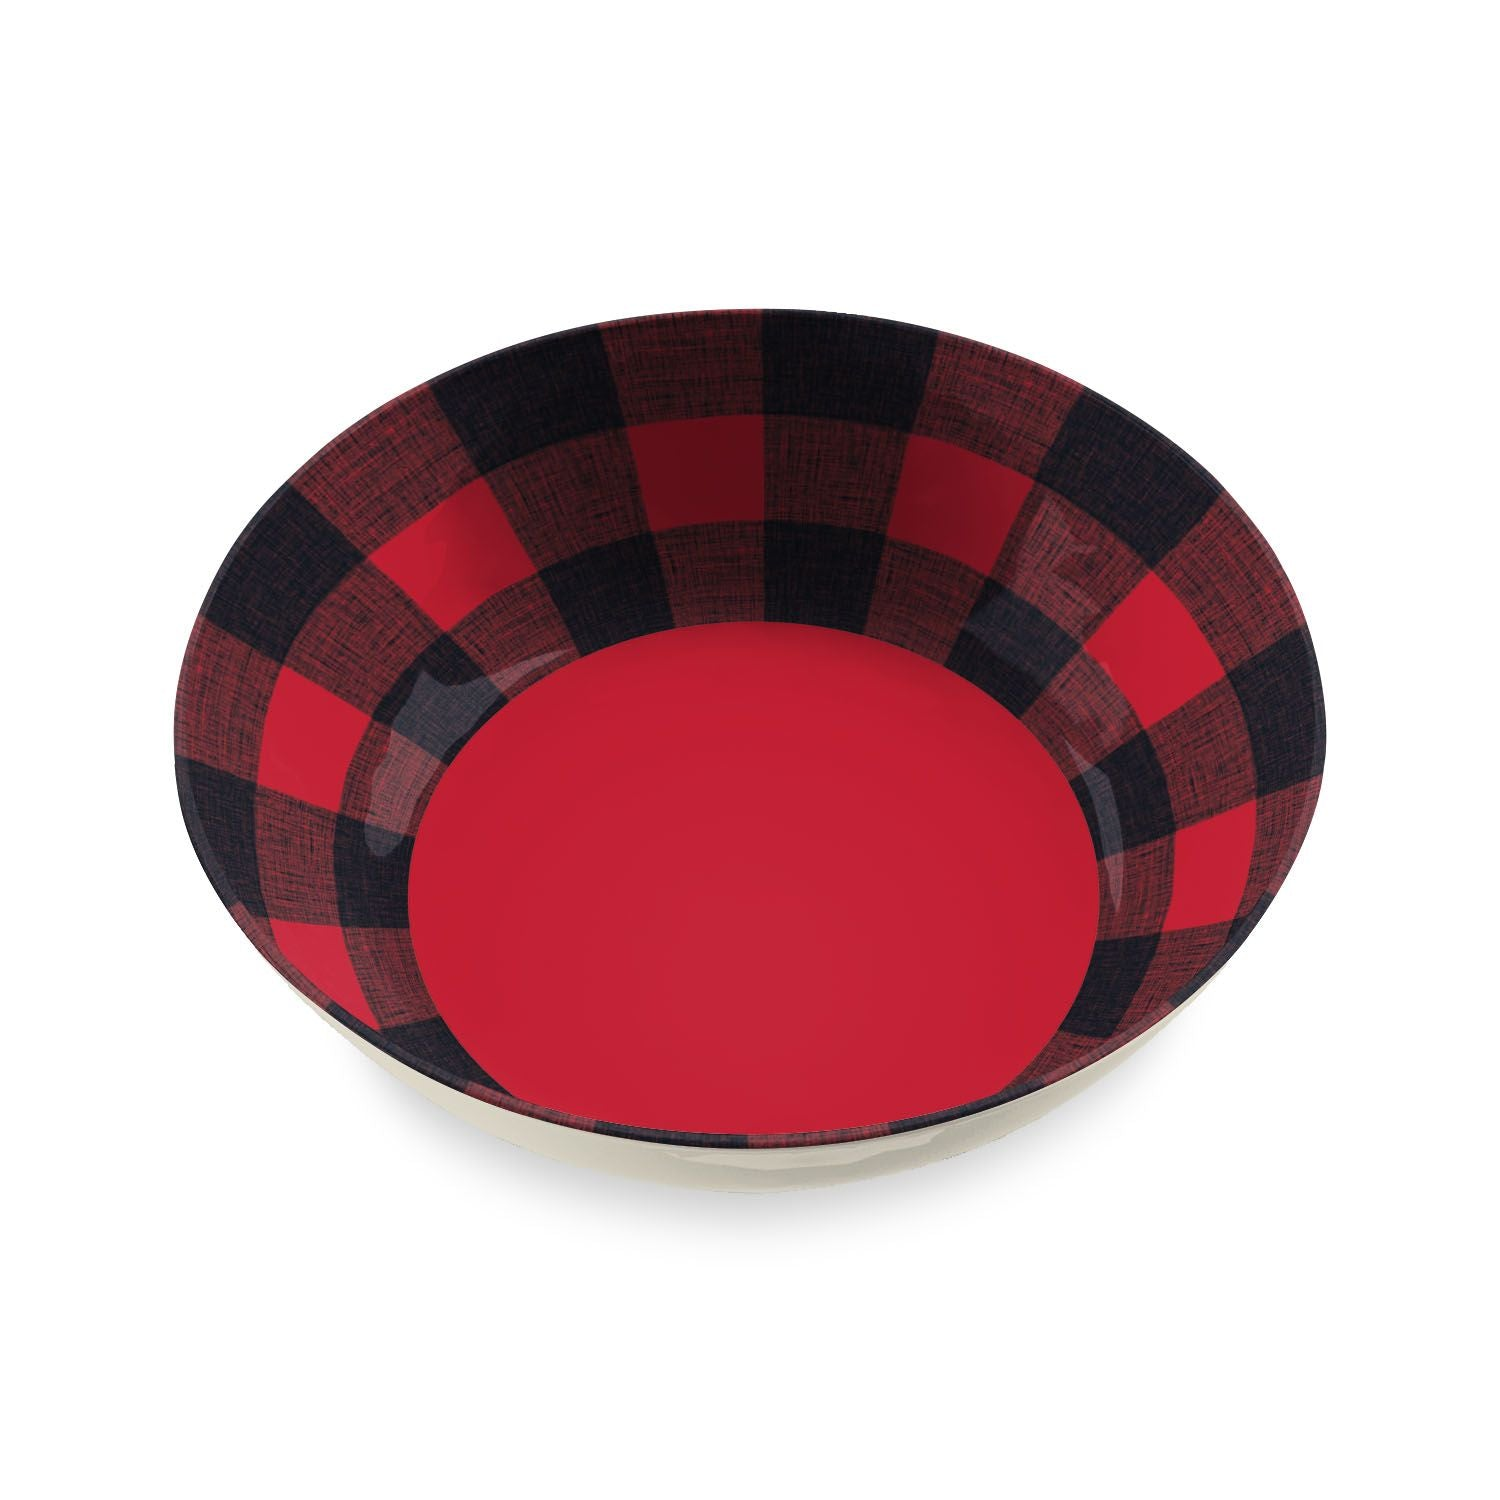 "TT20748075 - Vintage Lodge Buffalo Check -  Serve Bowl - 11.9"" x 3.1"" 135 oz. by TarHong"